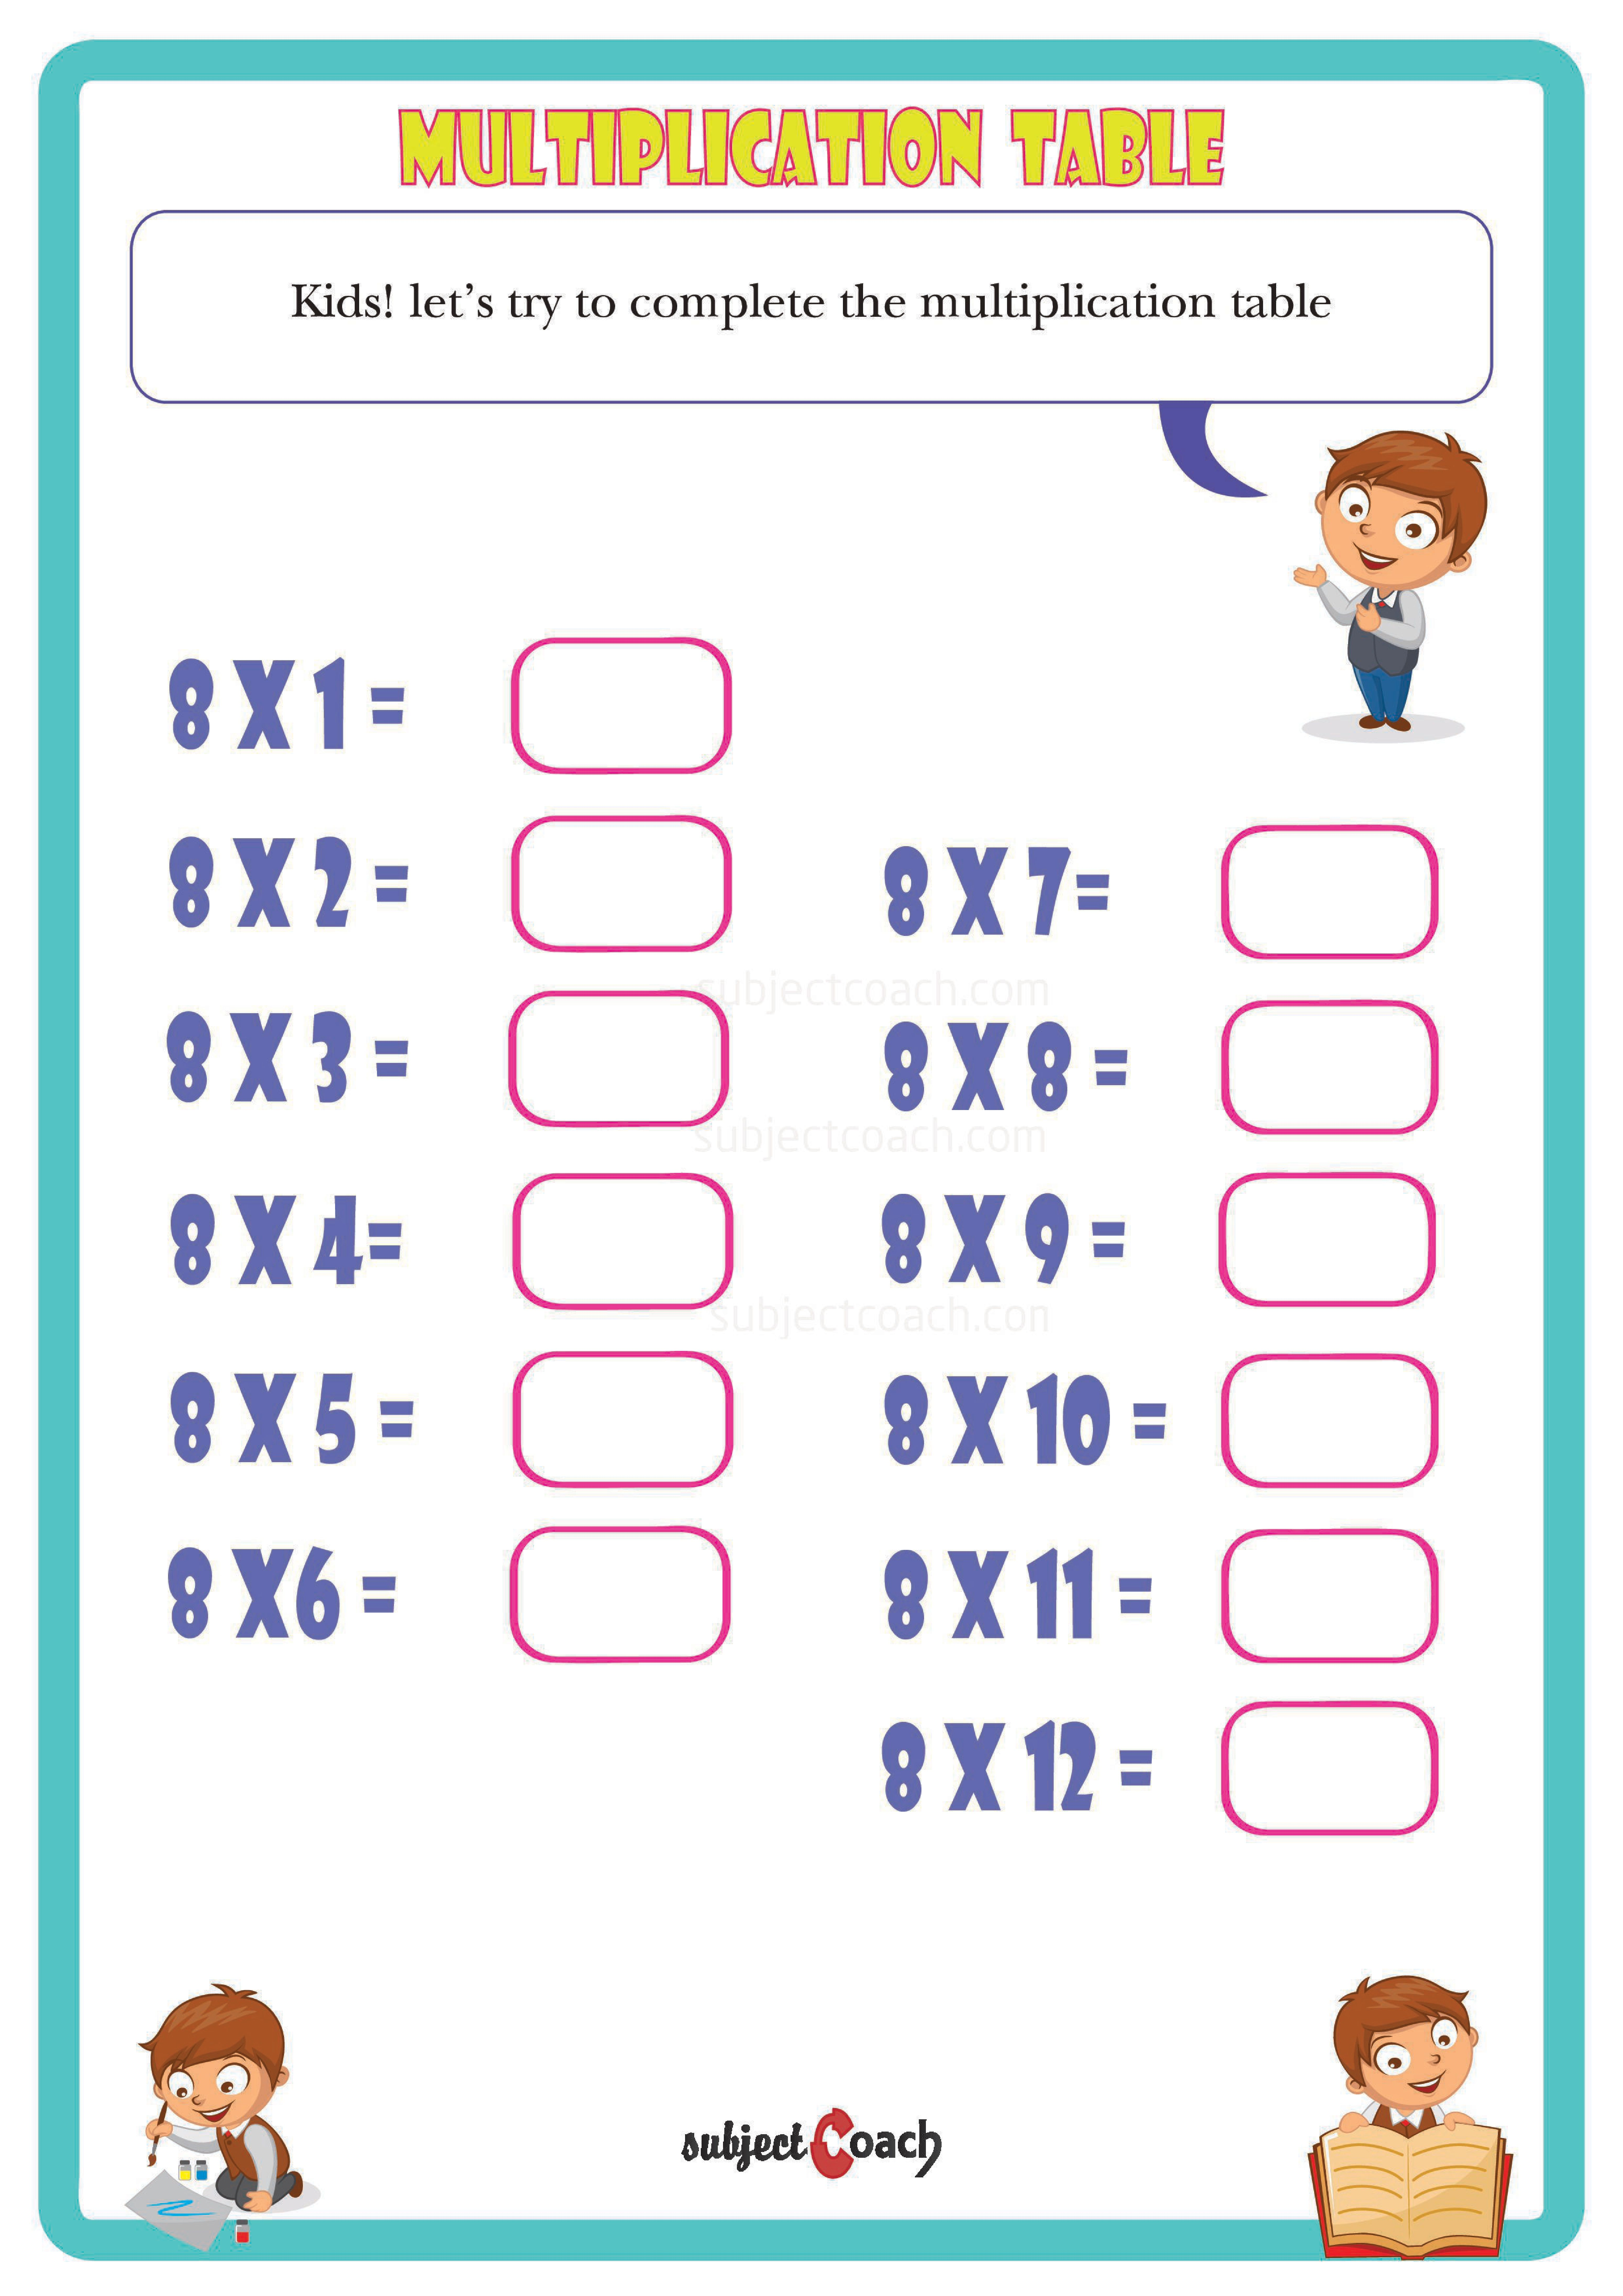 Let Your Kids Solve This Multiplication Table For Number 8